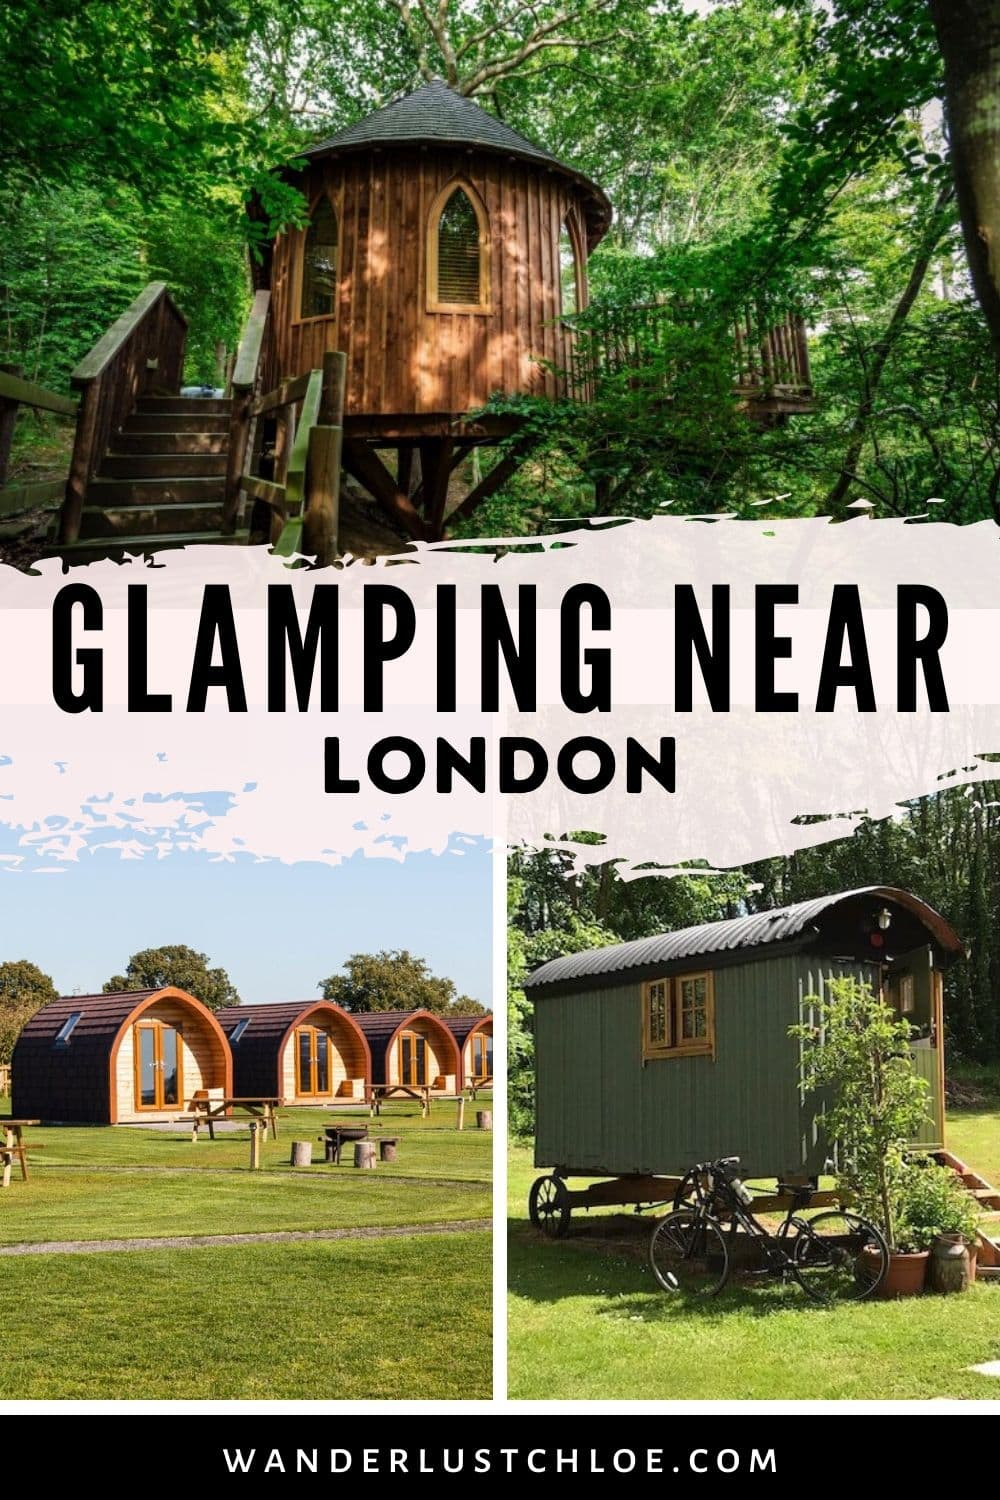 Glamping near London - quirky accommodation near London